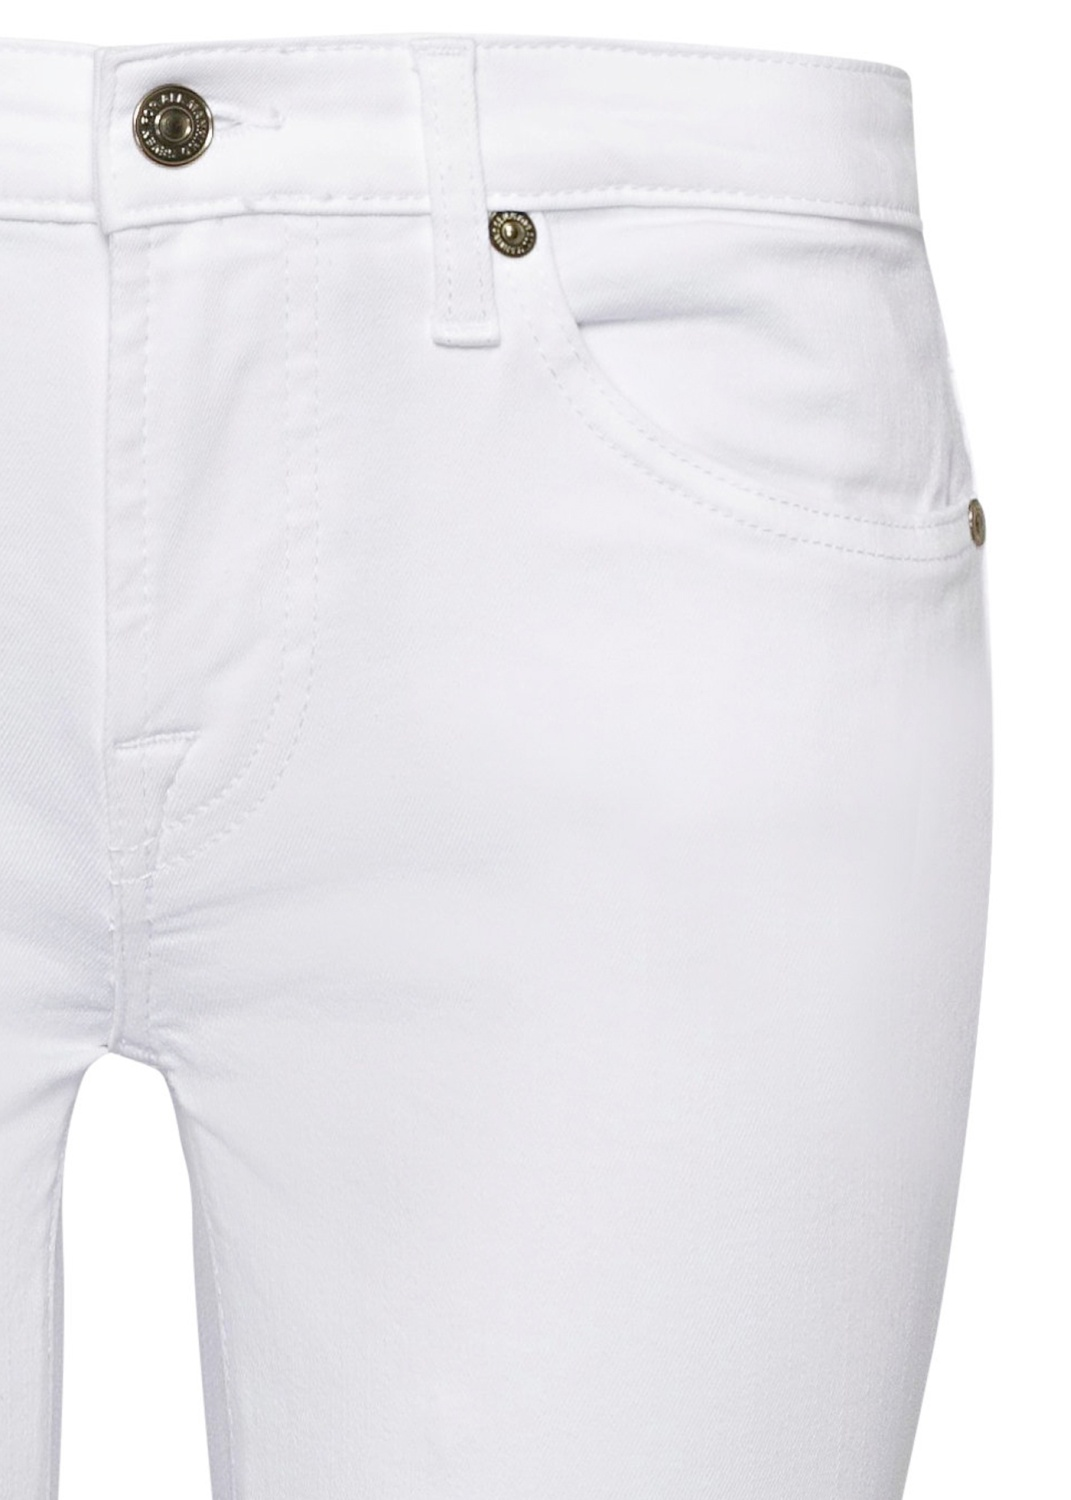 PYPER CROP Slim Illusion Pure White with Raw Cut Frayed image number 2